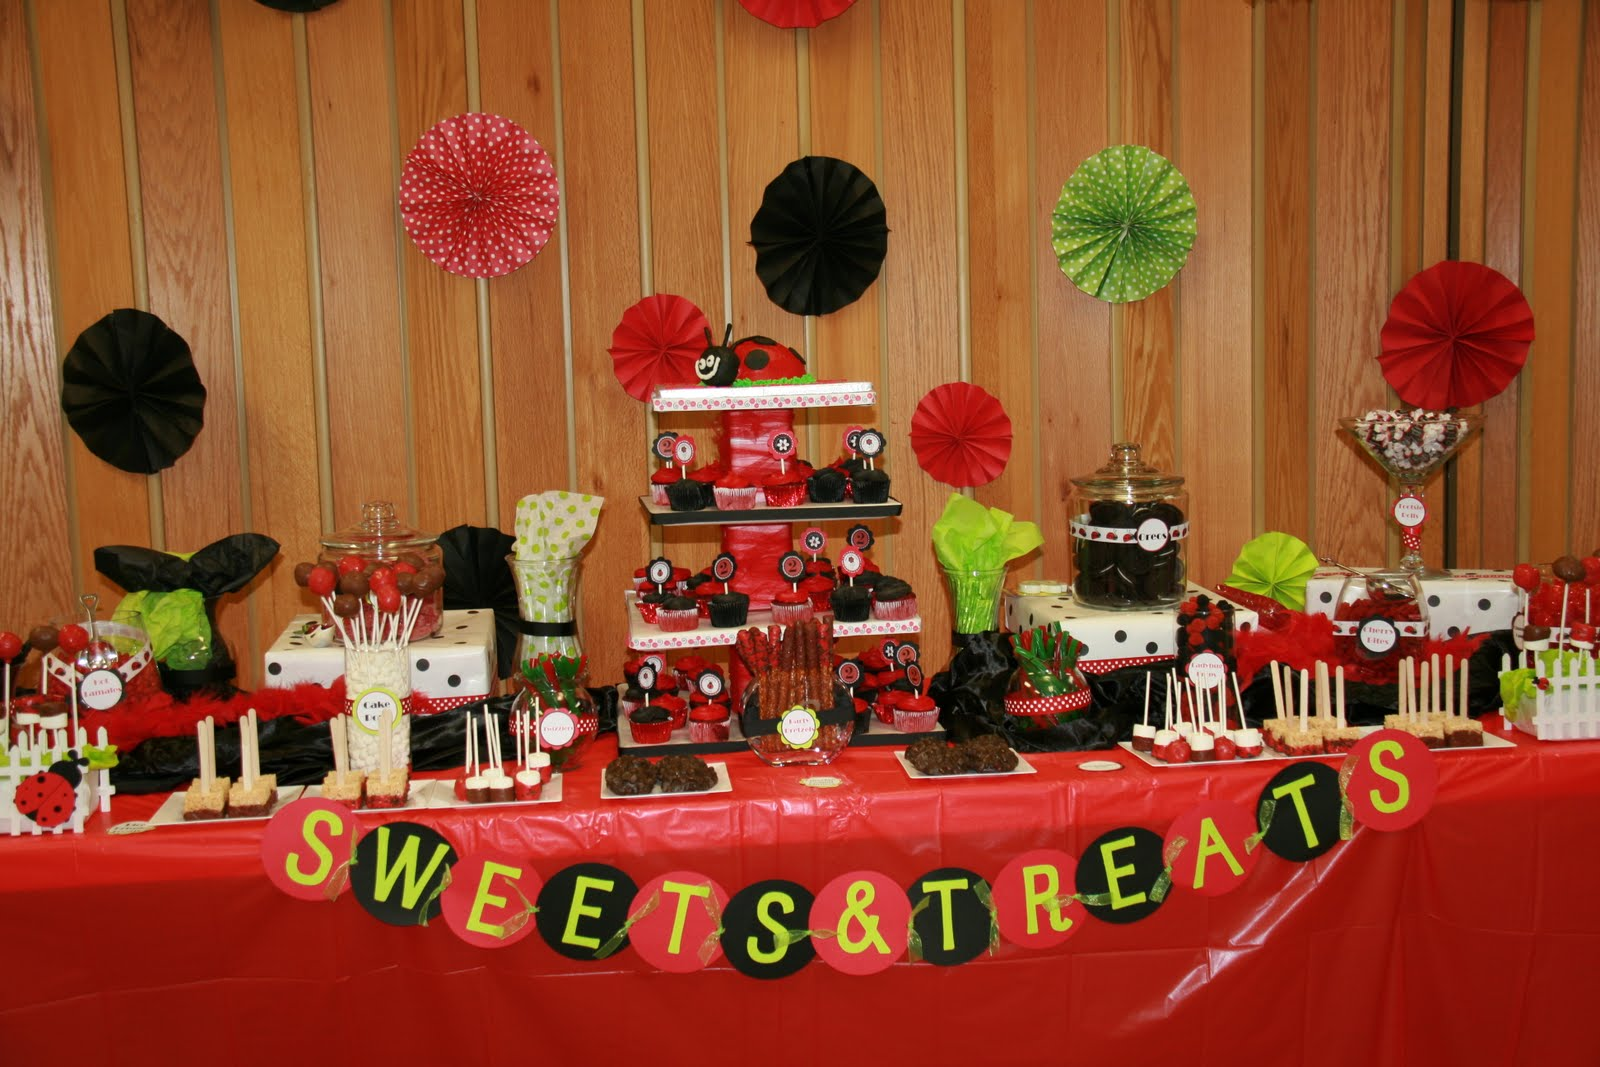 Ladybug Birthday Party Decorations And Banners 1600x1067 In 228 5KB